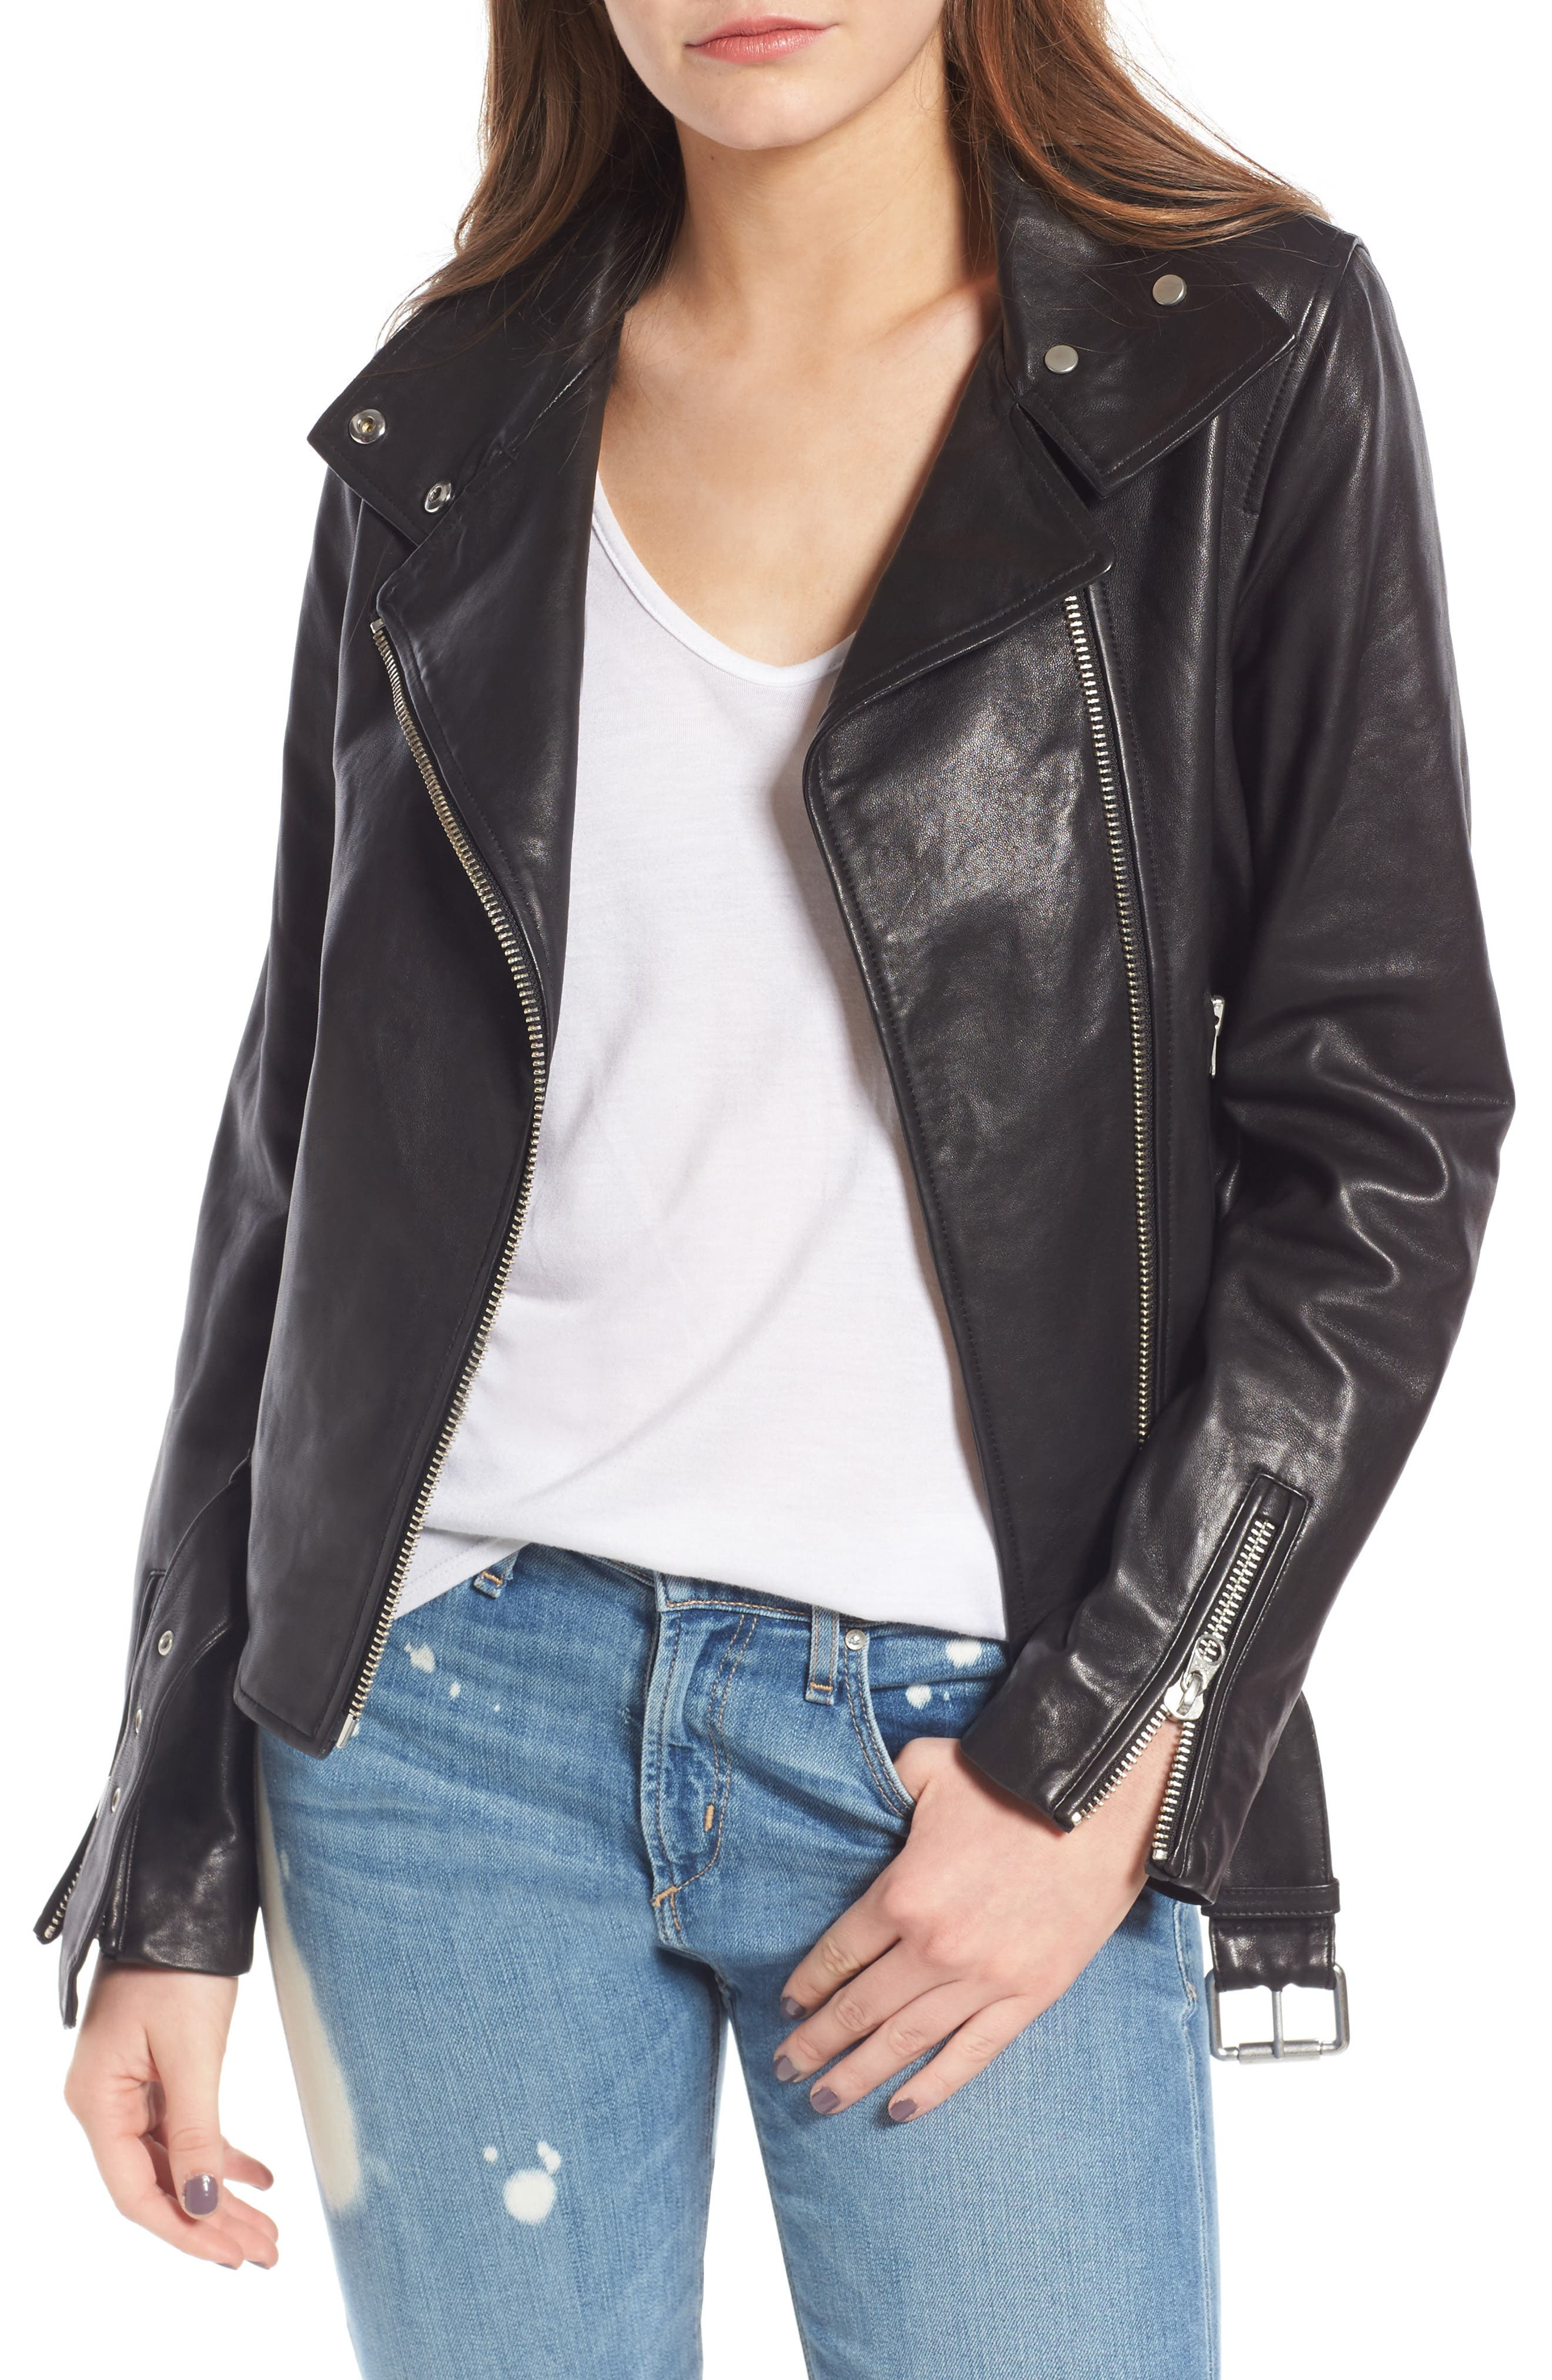 Miela-N Belted Leather Moto Jacket,                         Main,                         color, 001